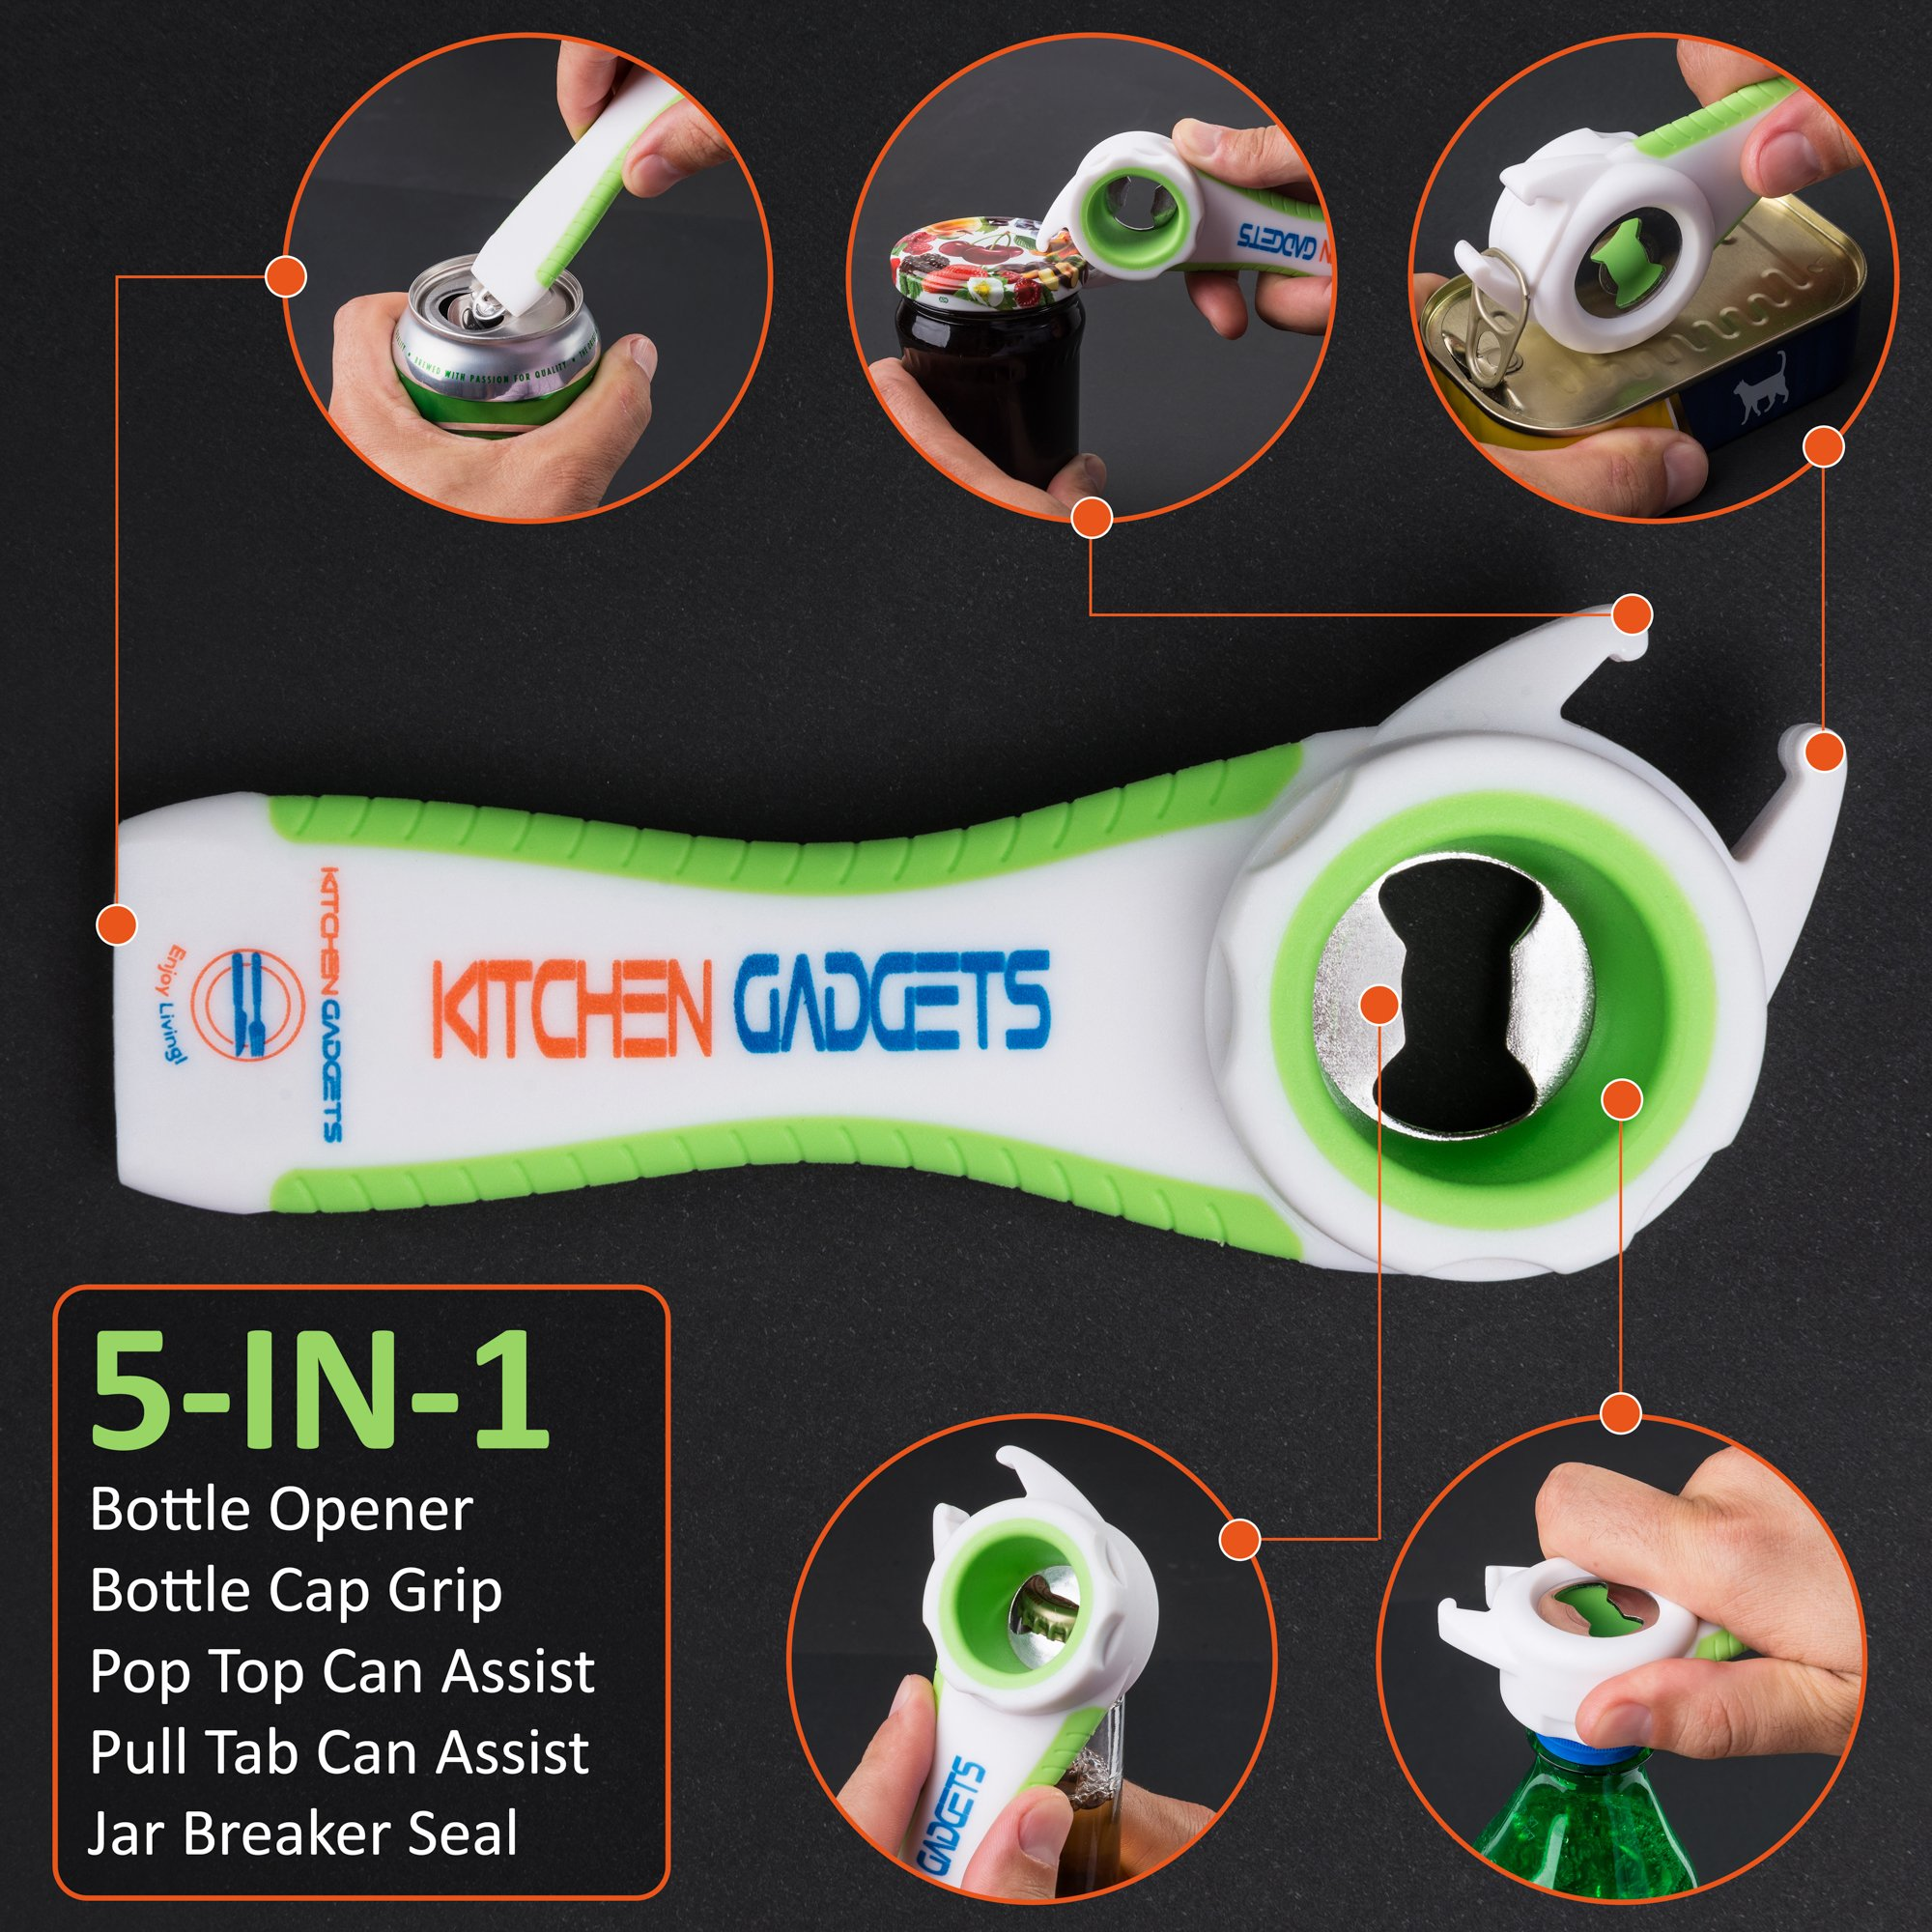 KitchenGadgets Jar Opener for Weak Hands, Water Bottle Openers for Seniors with Arthritis, The #1 All in One Premium Multifunction Jar and Bottle Opener Set for Elderly by KitchenGadgets (Image #4)